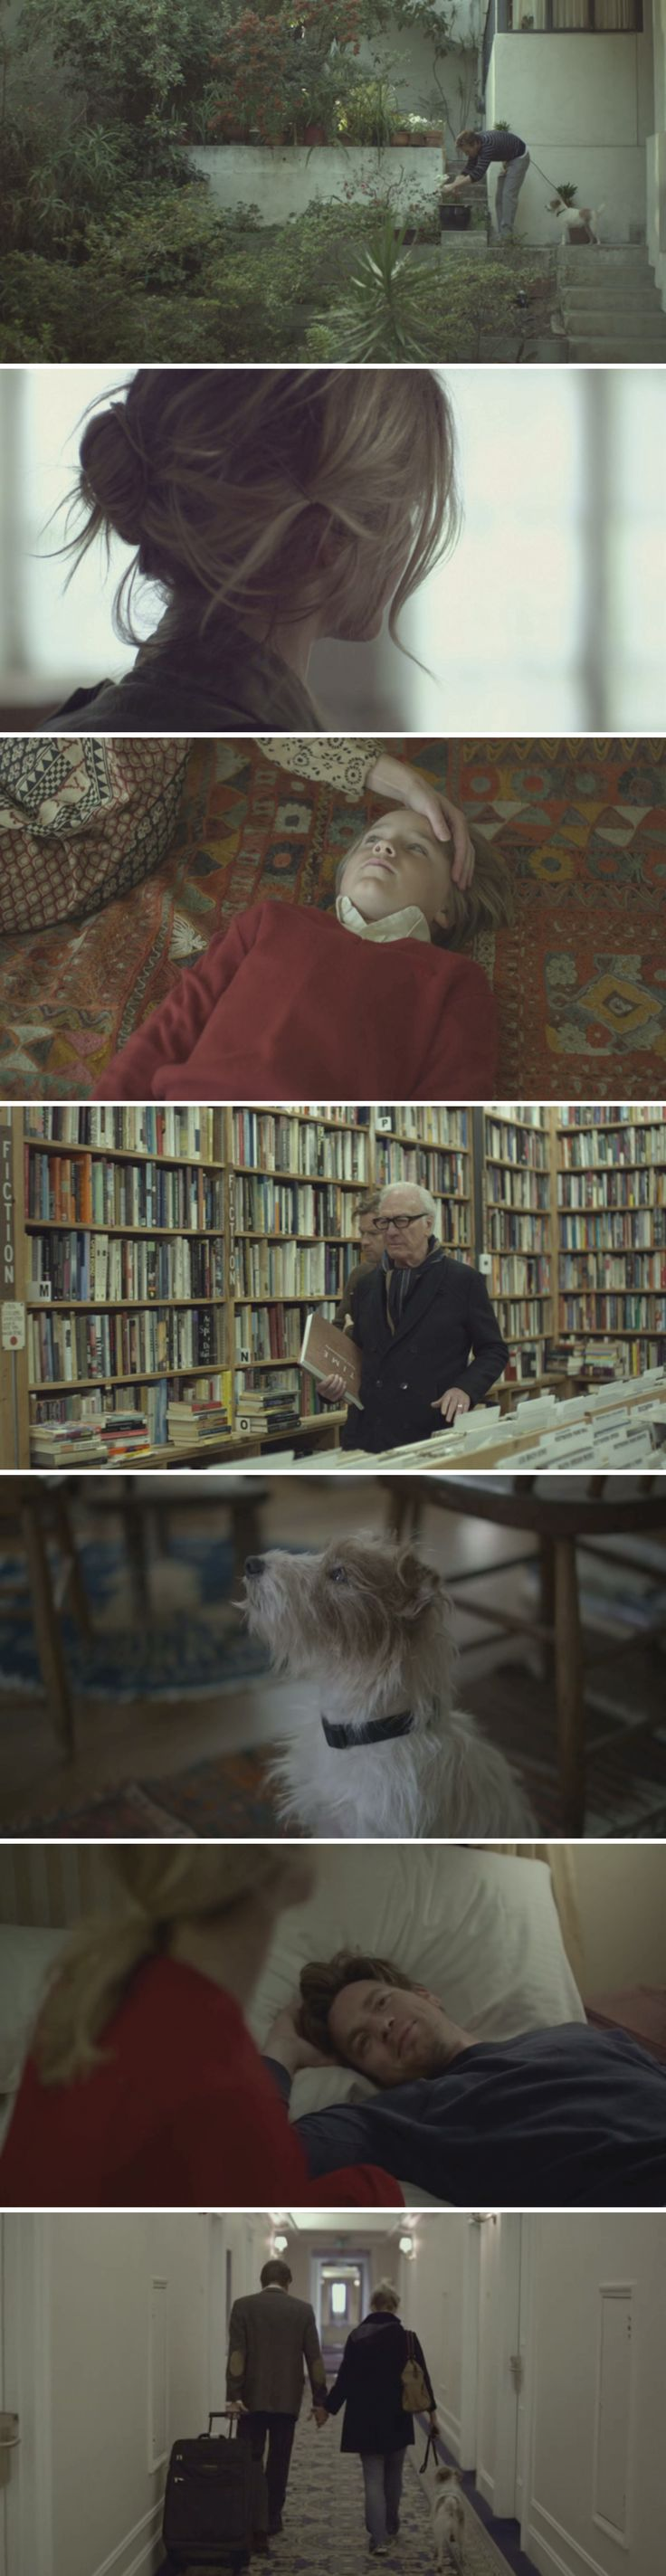 beginners - such a great and low key movie